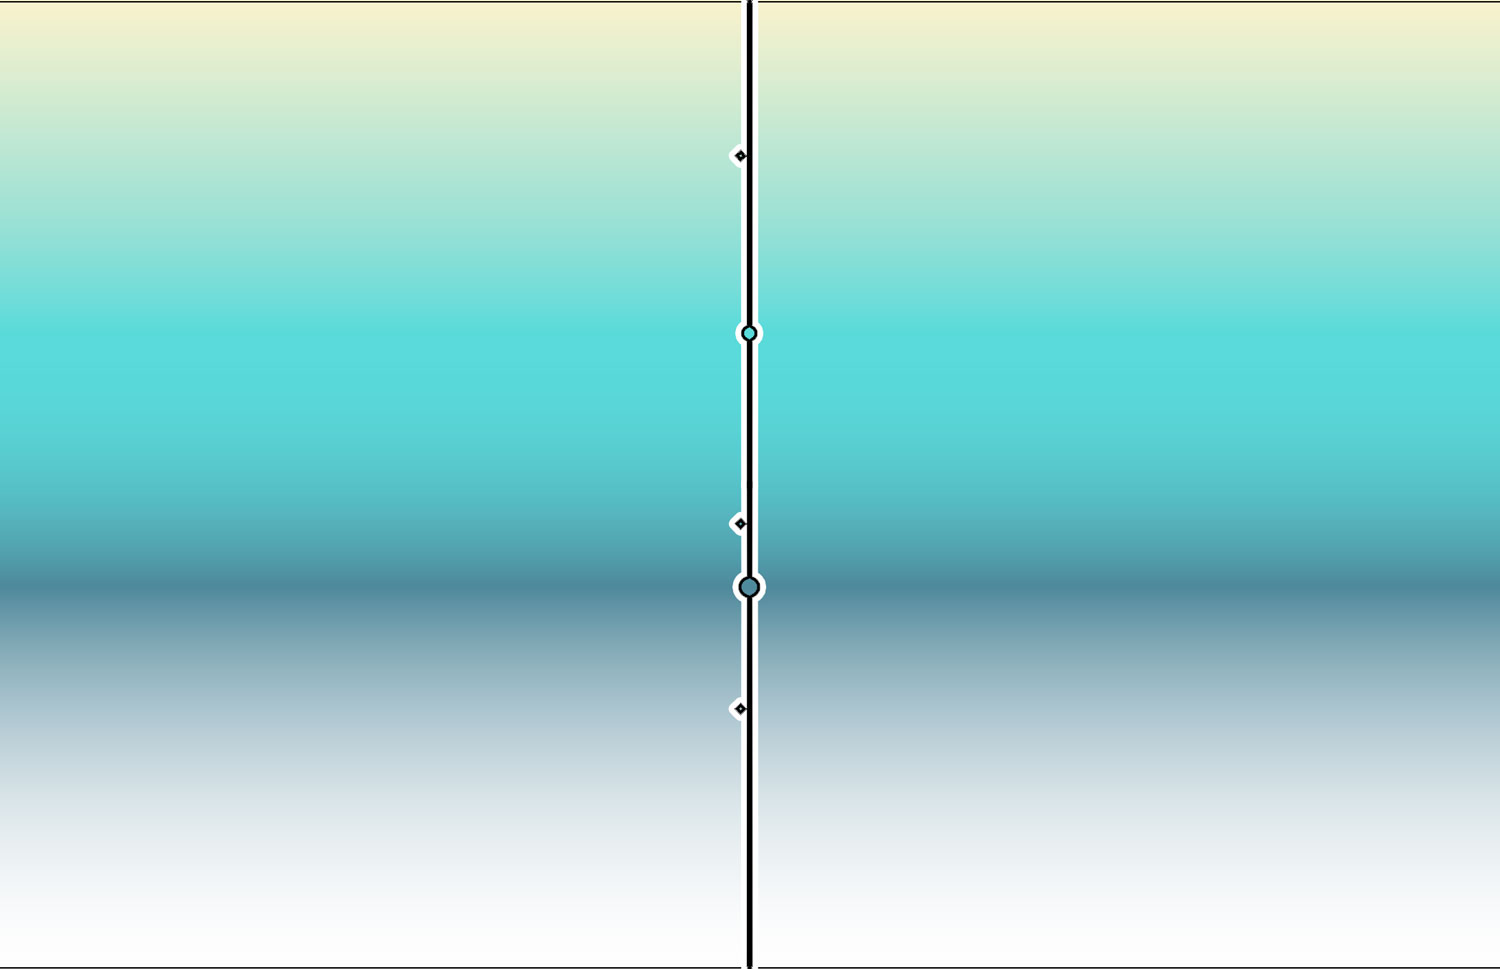 A linear gradient in edit mode in Illustrator 2019